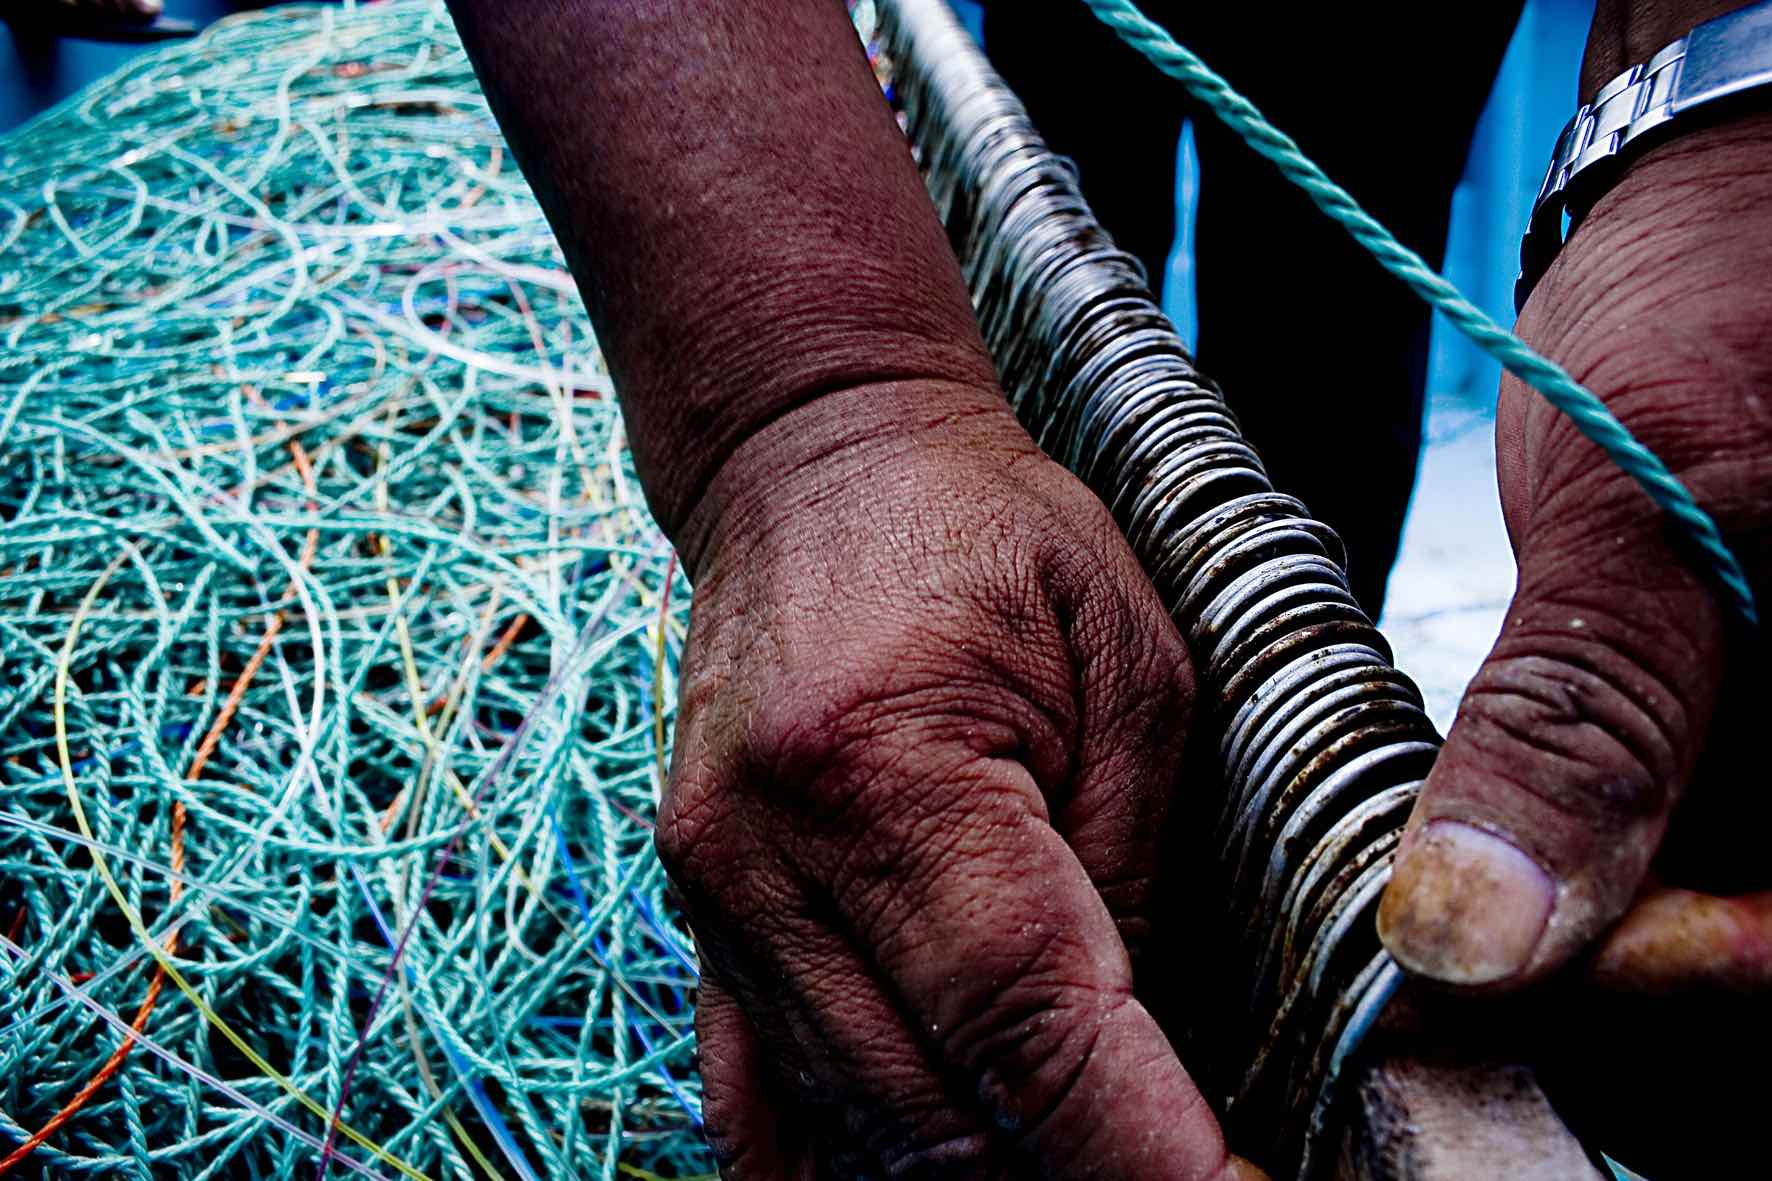 Artisanal fishing is a critical hazard that can cause death by drowning to sea turtles and other marine life. © IYORBank / Marine Image Bank